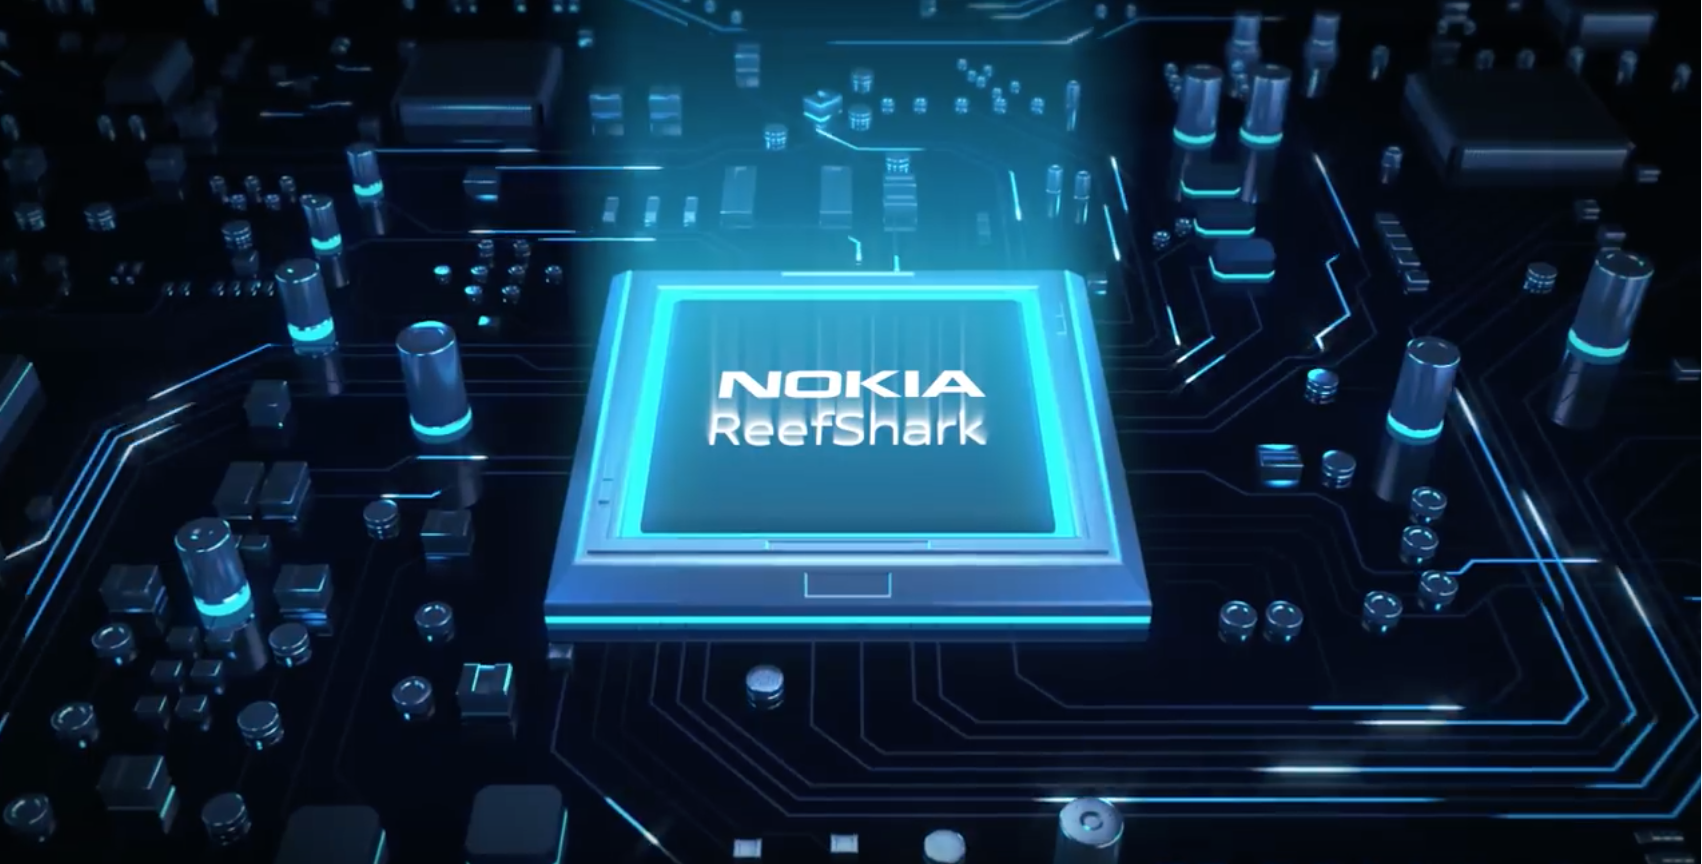 Screen Shot 2018 01 31 at 8.53.48 PM - Nokia launches ReefShark, promises massive performance in 5G networks